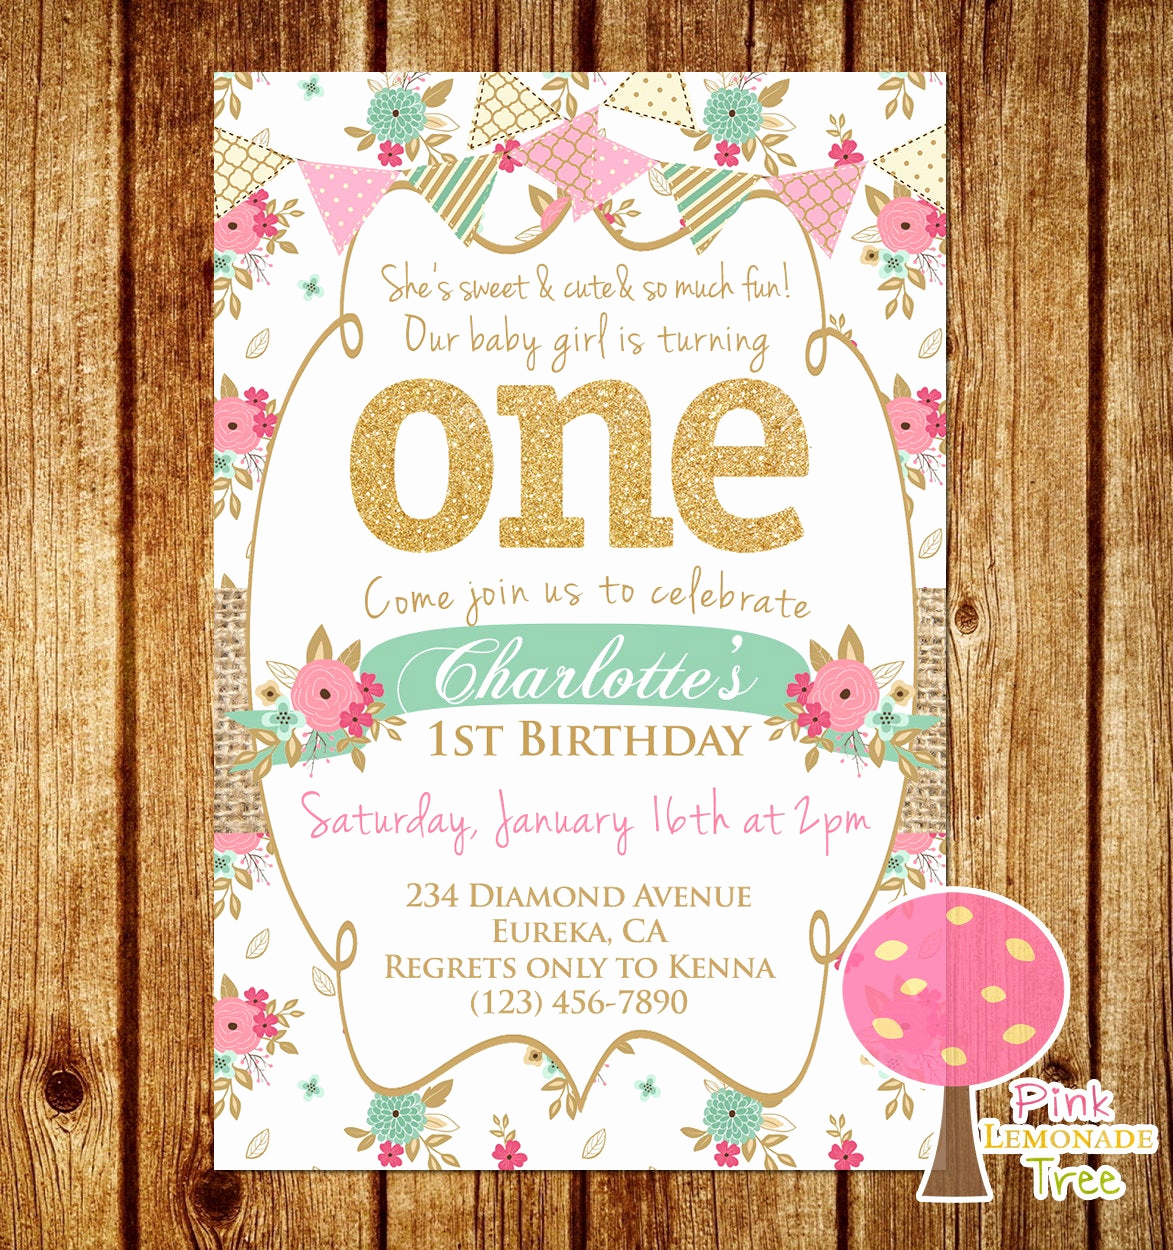 Shabby Chic Invitation Templates Free Best Of Shabby Chic First Birthday Party Invitation Gold Glitter